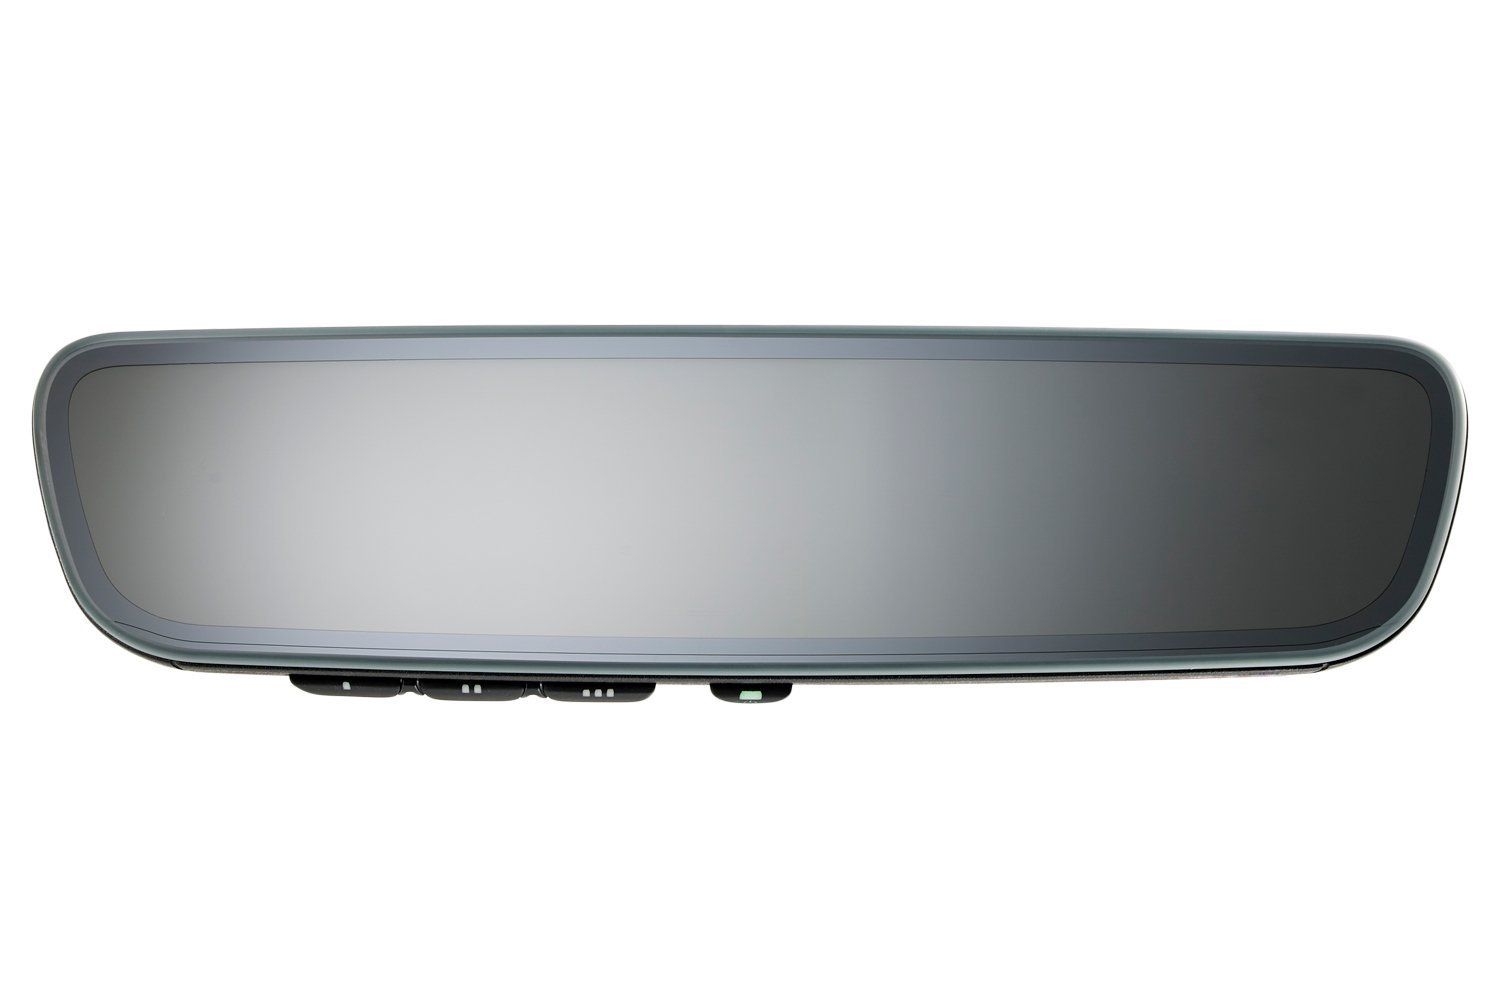 Amazon.com: Gentex Series 8 Frameless Auto-Dimming Mirror with Homelink  50-genk80a: Automotive